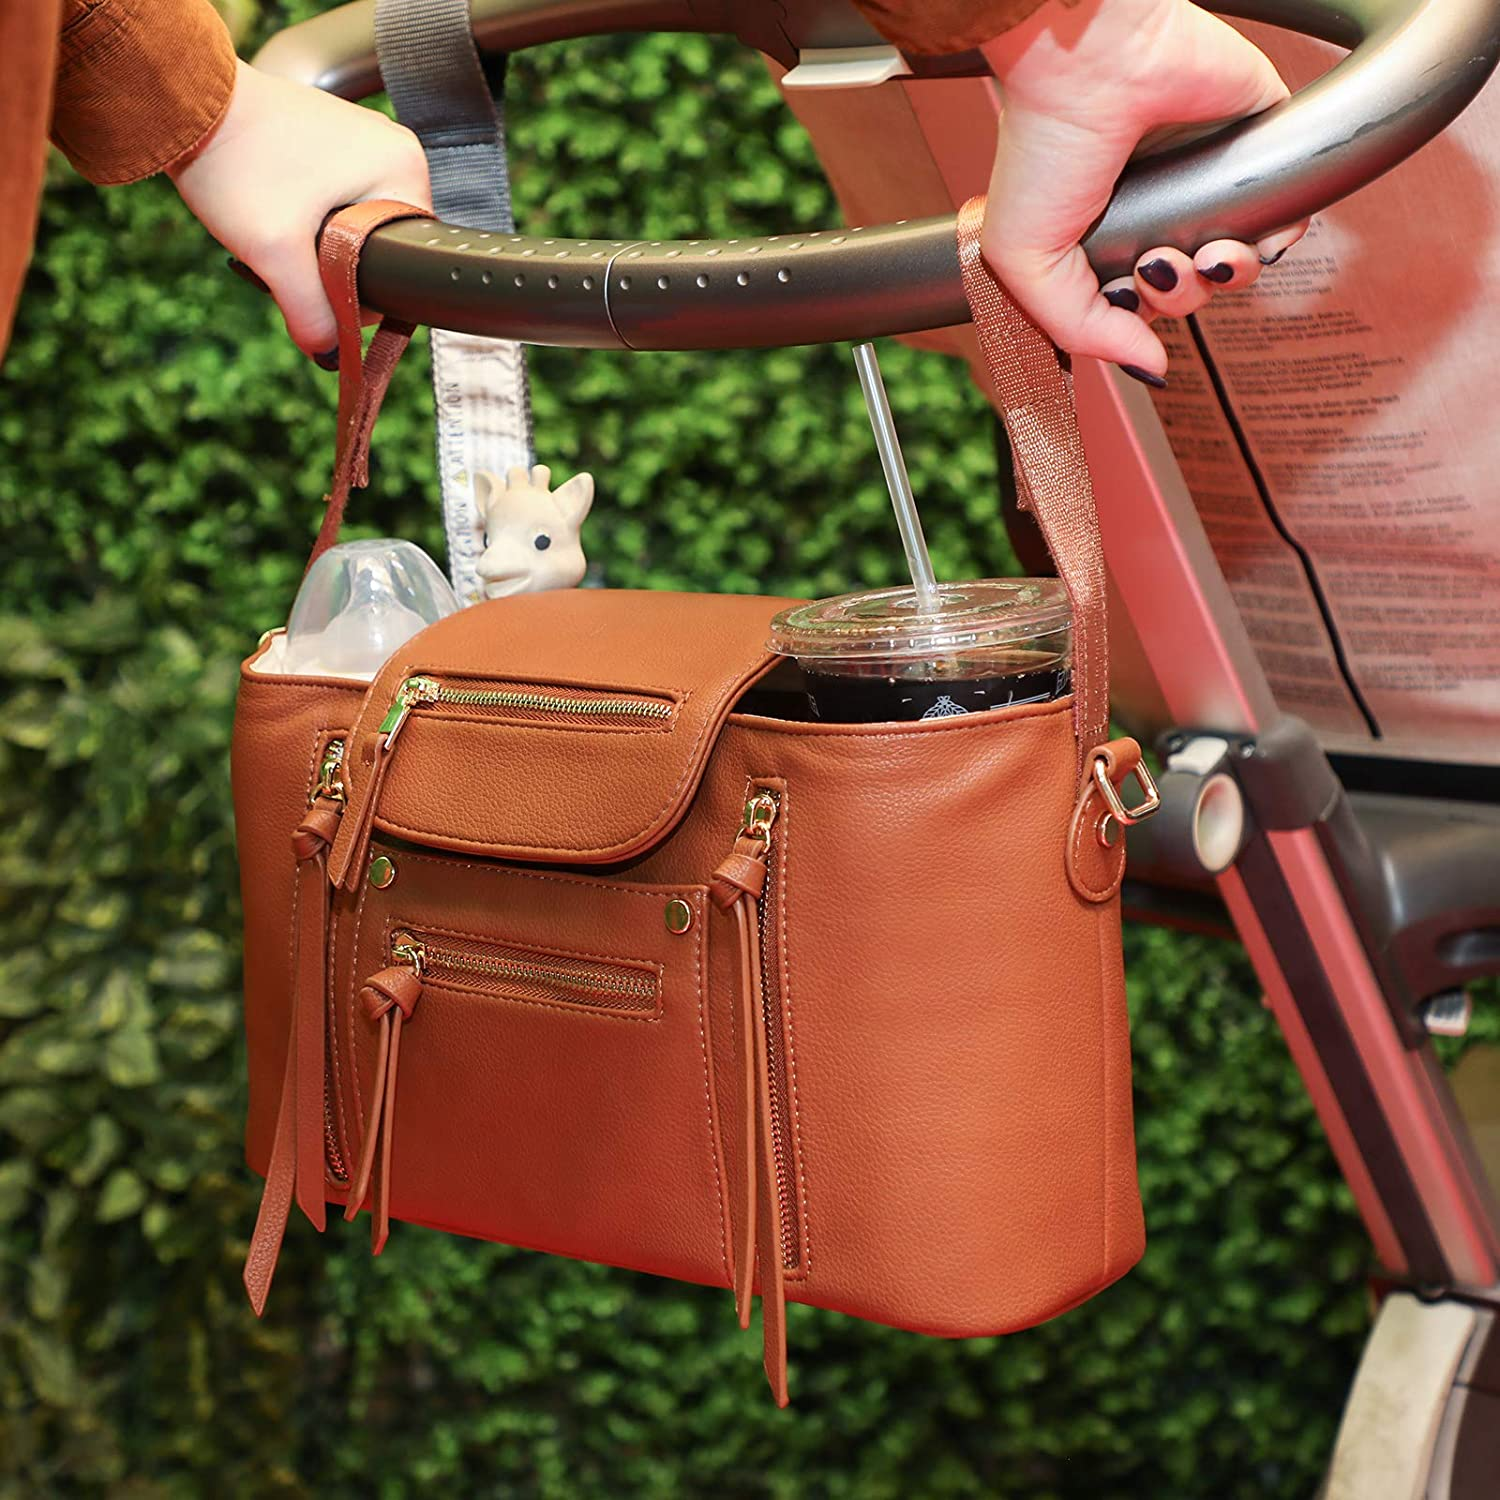 Miss Fong Stroller Organizer with Insulated Cup Holders for weekly finds